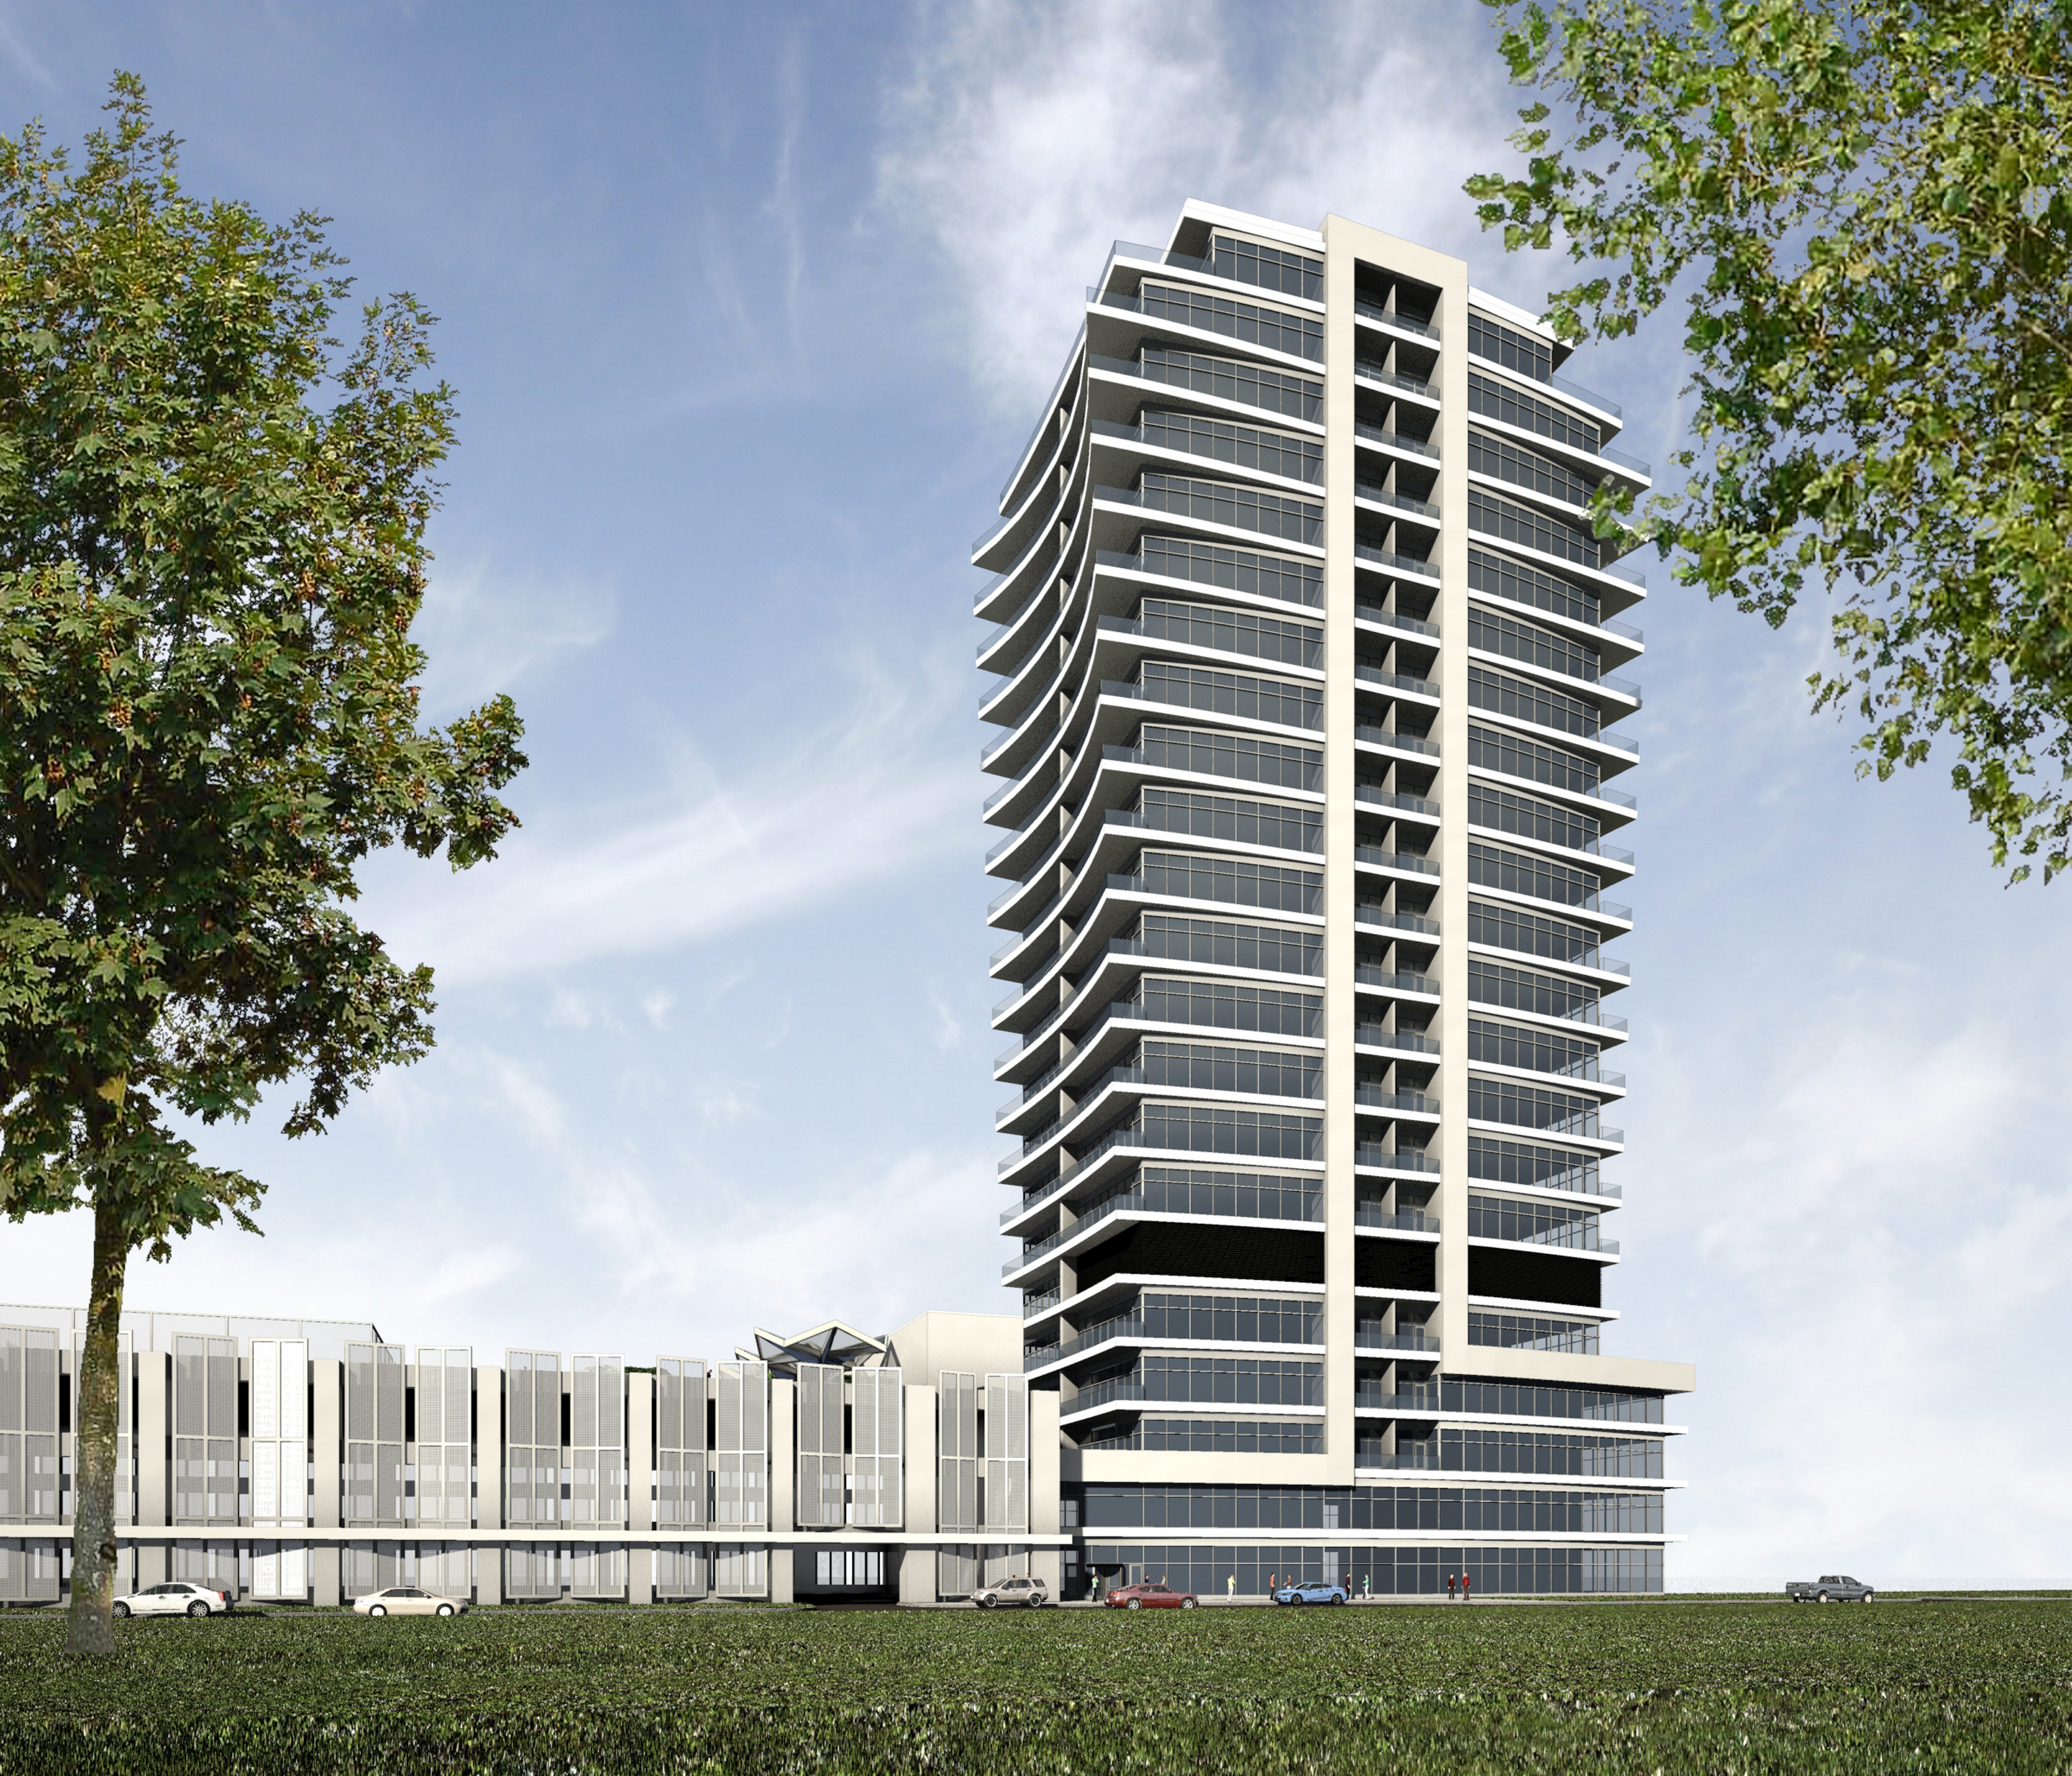 Apartments @ Queen City Landing, shown in this Trautman Associates rendering, would replace the Freezer Queen storage building.